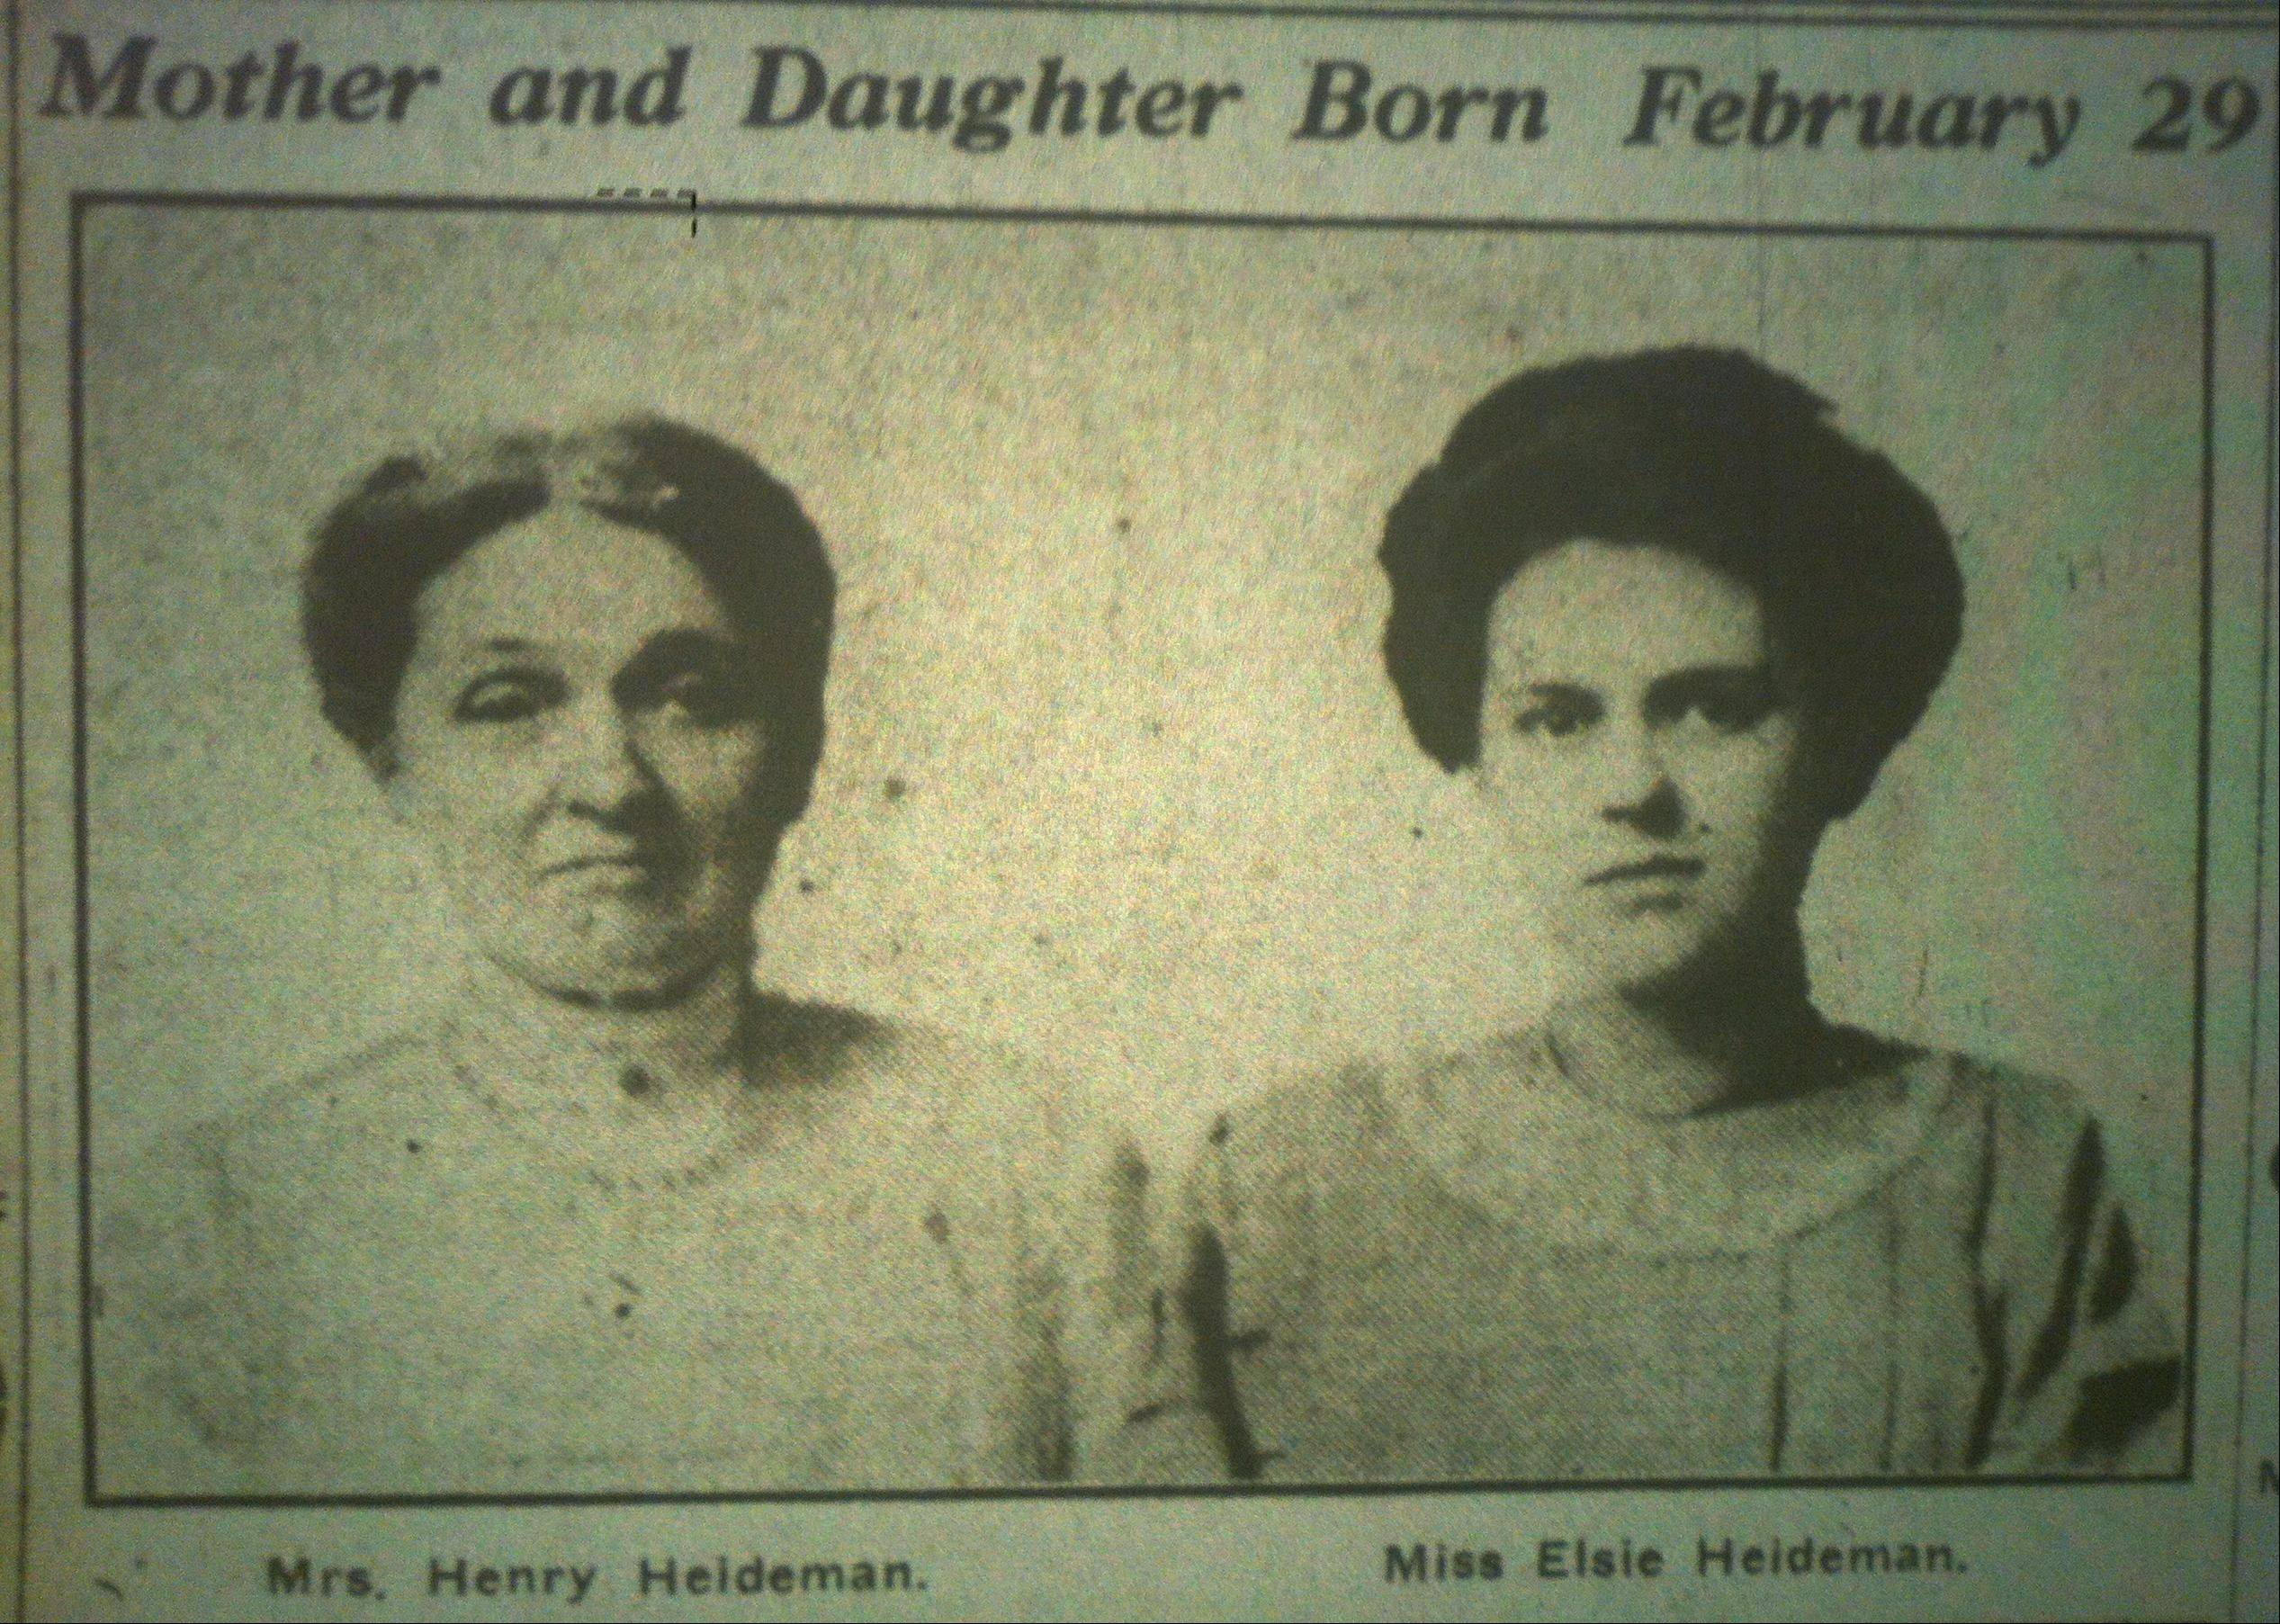 Emma Heideman and her daughter, Elsie Heideman, of Elgin shared a birthday few families could claim. They were both born Feb. 29 in a leap year.